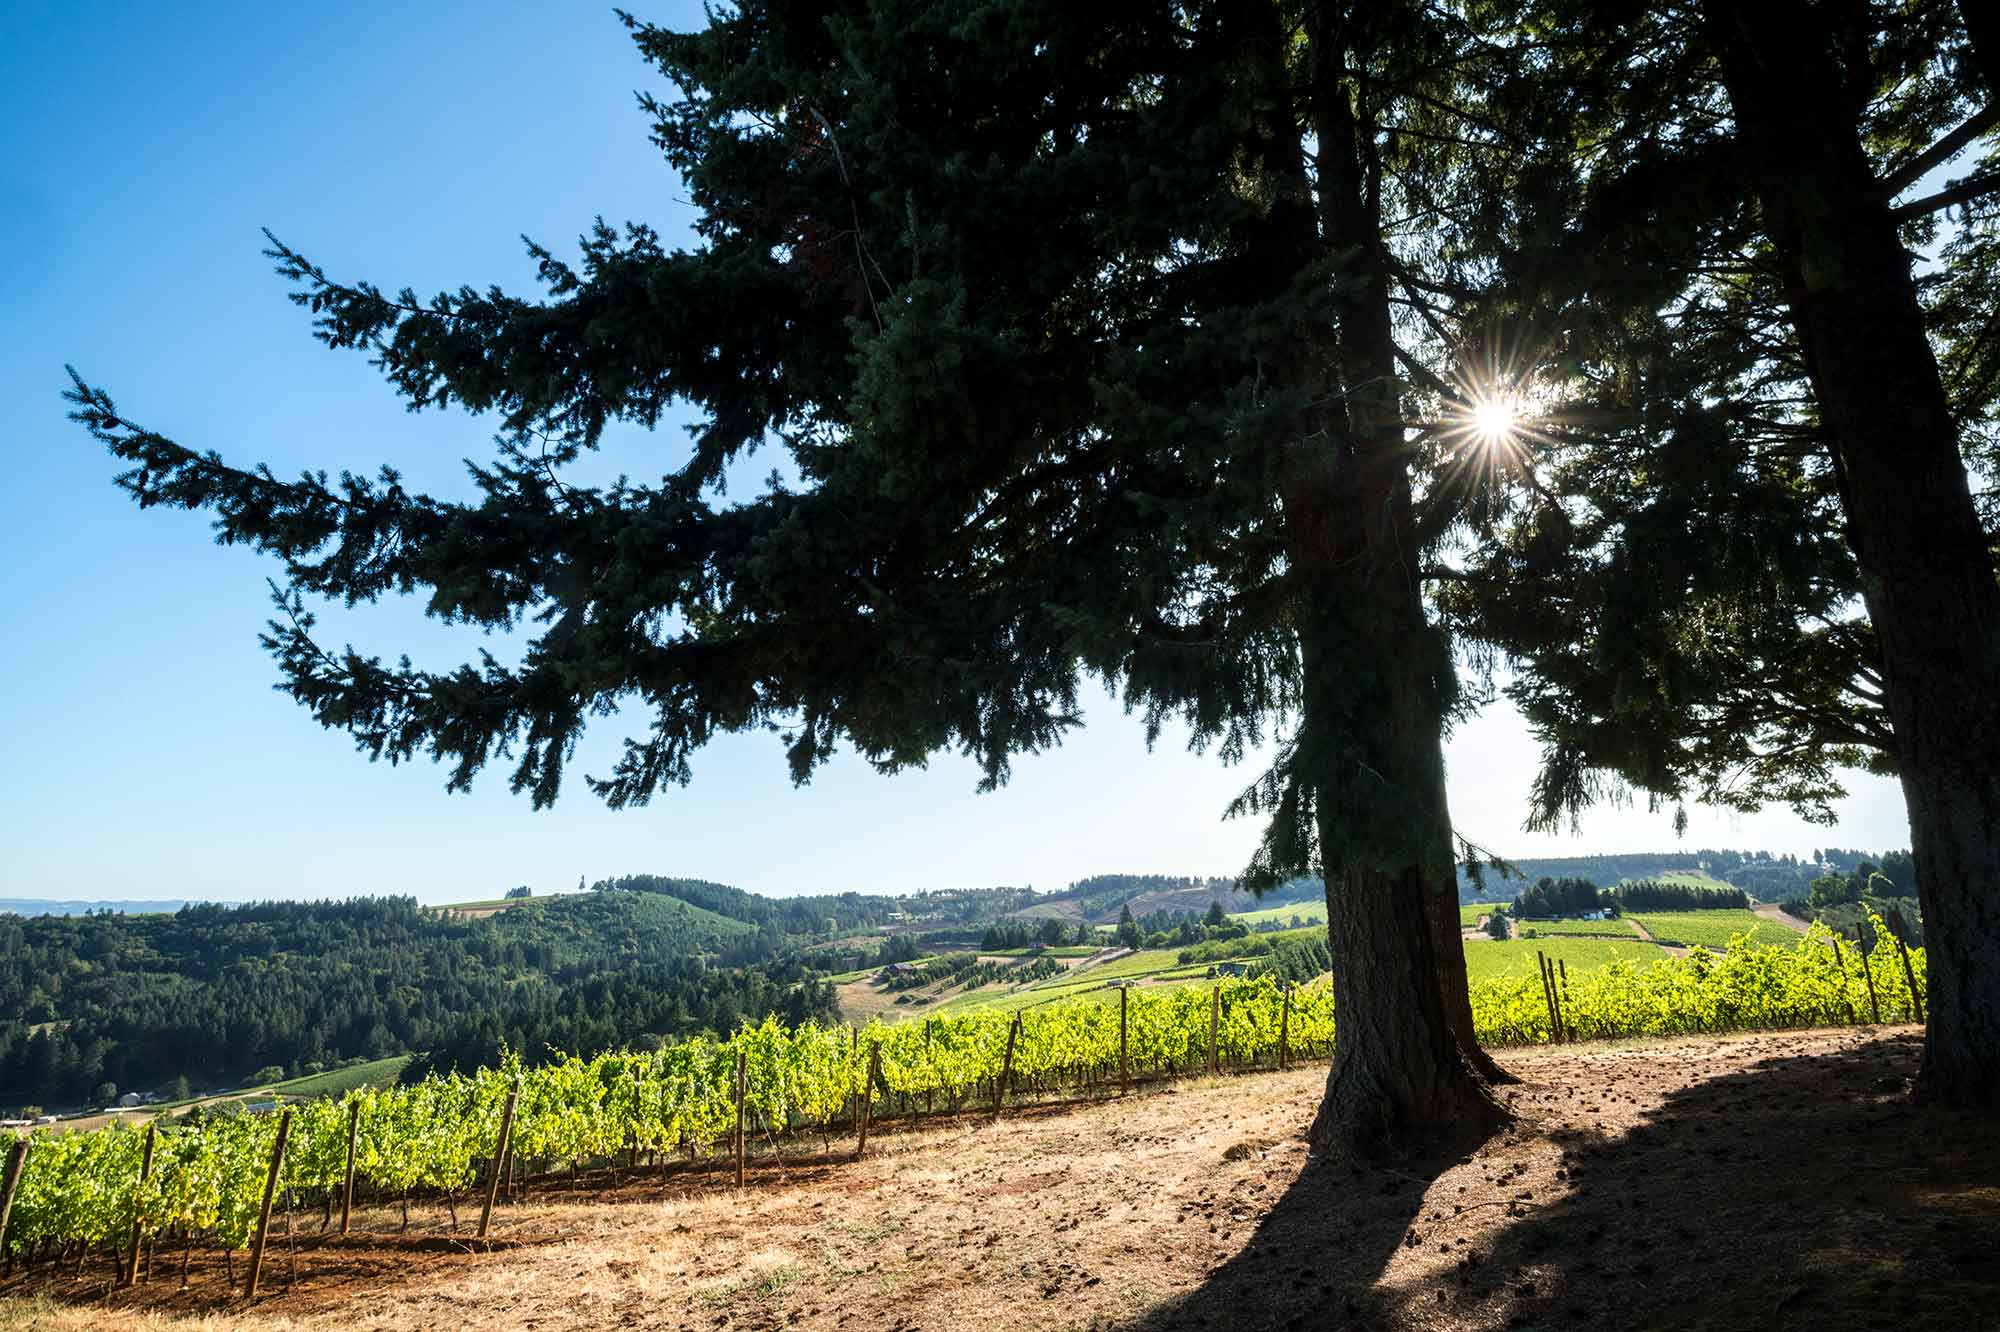 Scenic view of Prince Hill vineyard